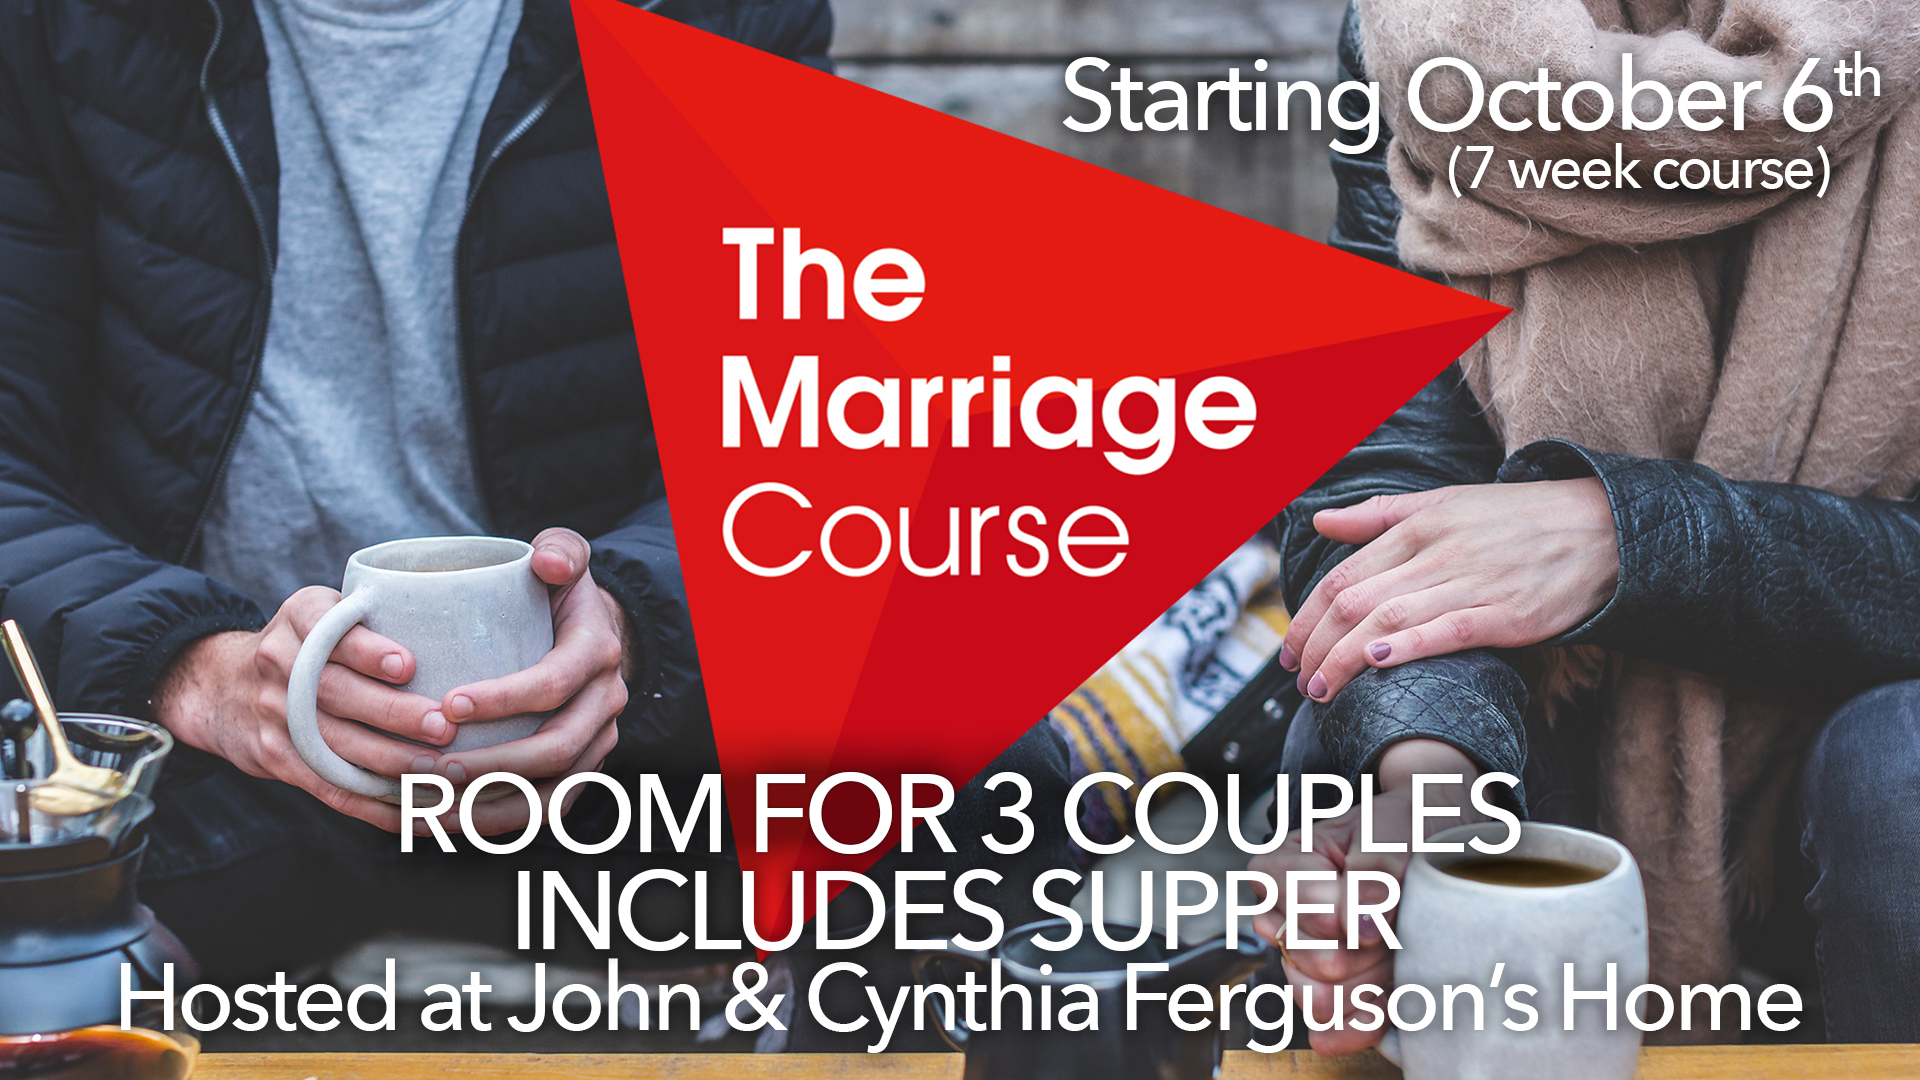 Alpha Marriage Course Fall Startup 2019.jpg